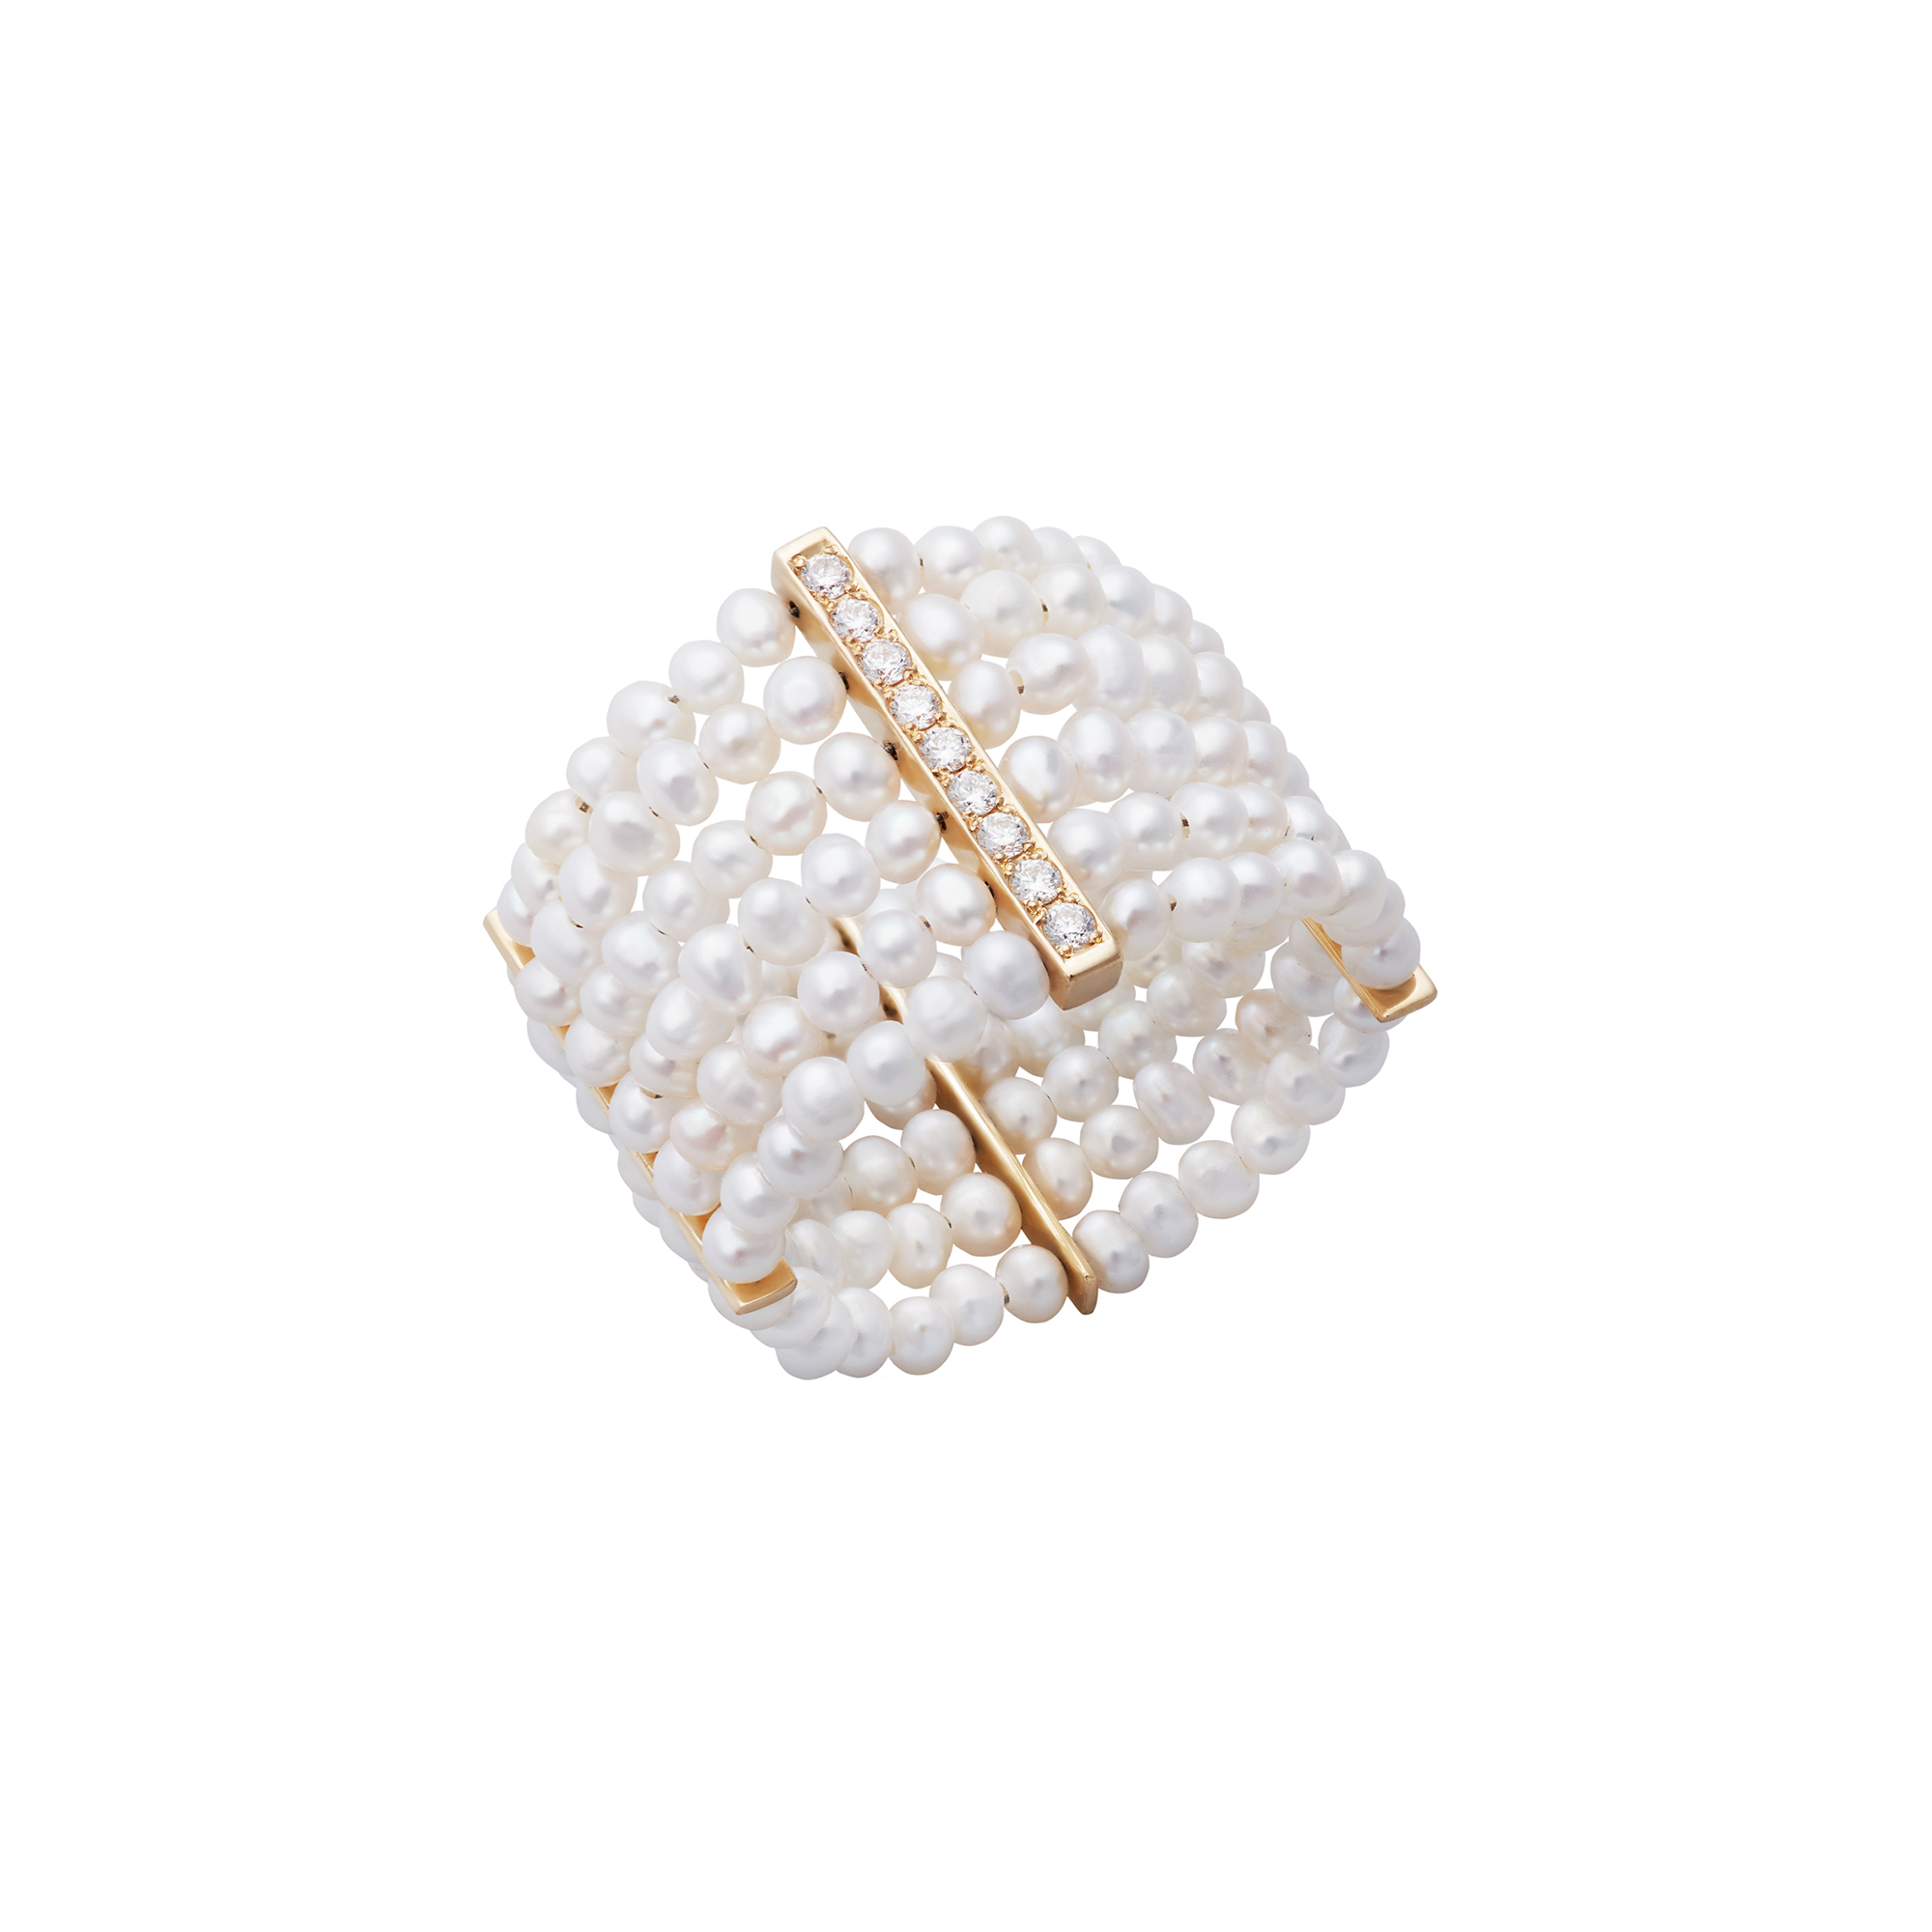 Small Bandage Pearl Ring with Diamond Pavé by Jewelry Lab on curated-crowd.com